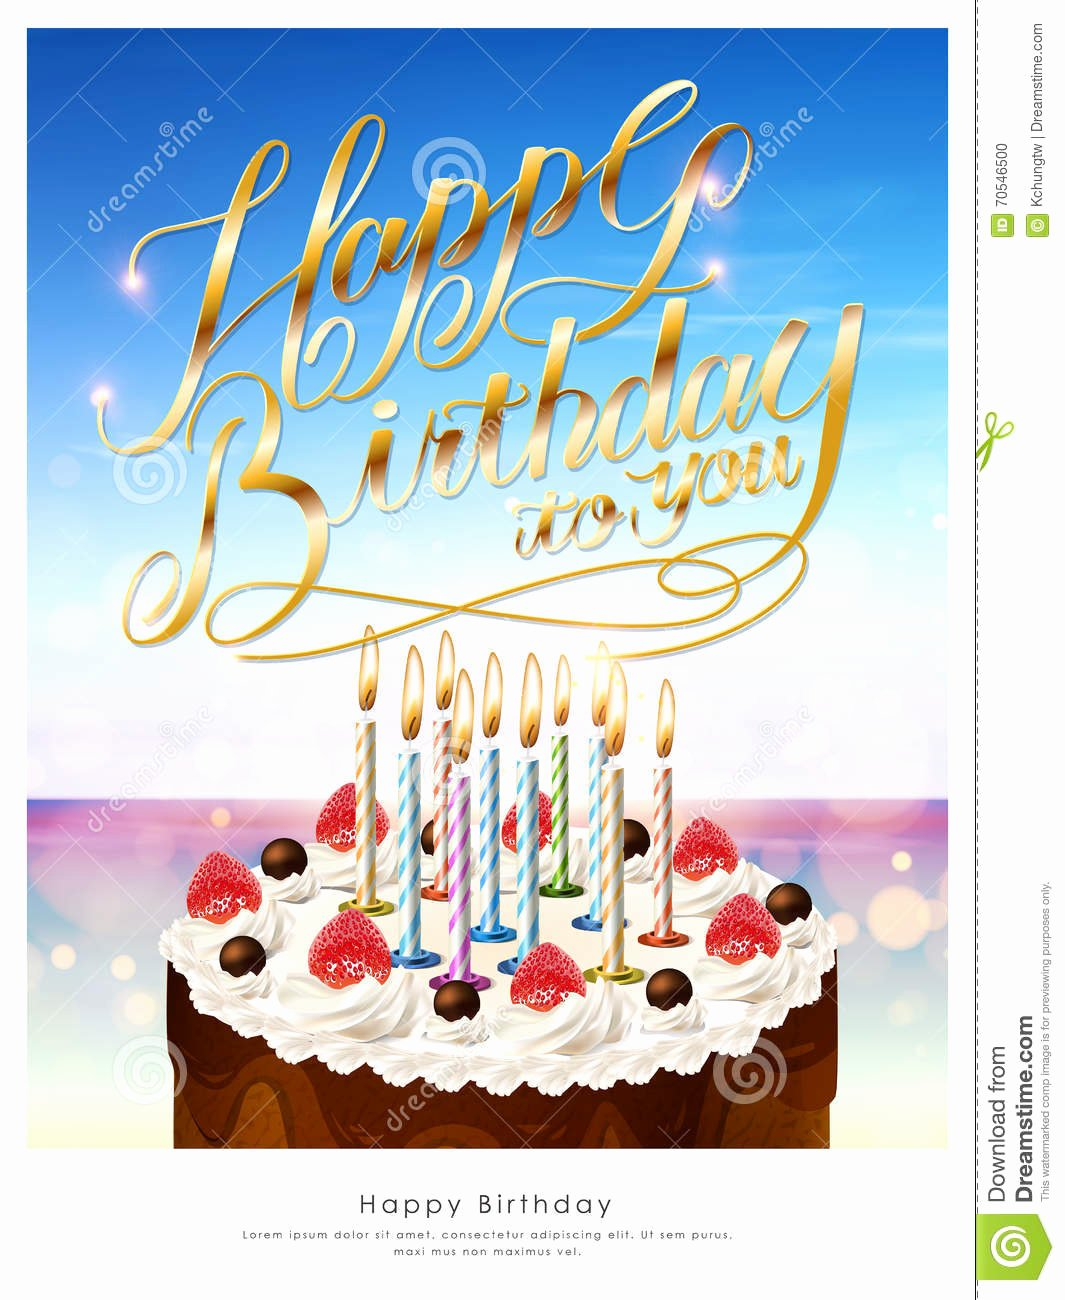 Happy Birthday Template for Cake Awesome Happy Birthday Poster Stock Illustration Illustration Of